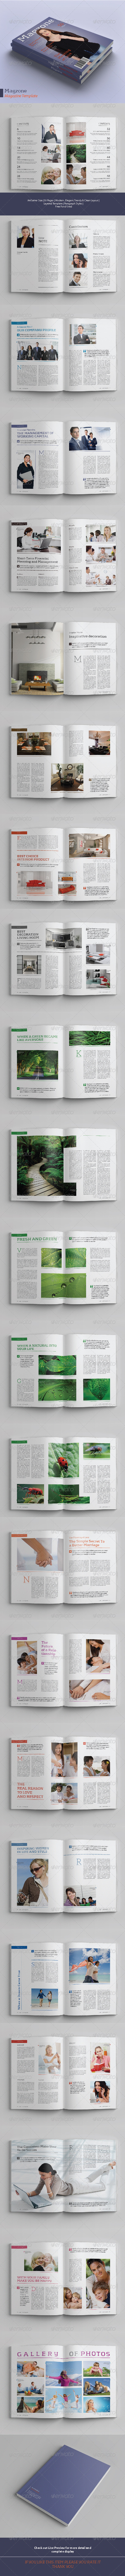 A4/Letter Magzone Magazine Template - Magazines Print Templates